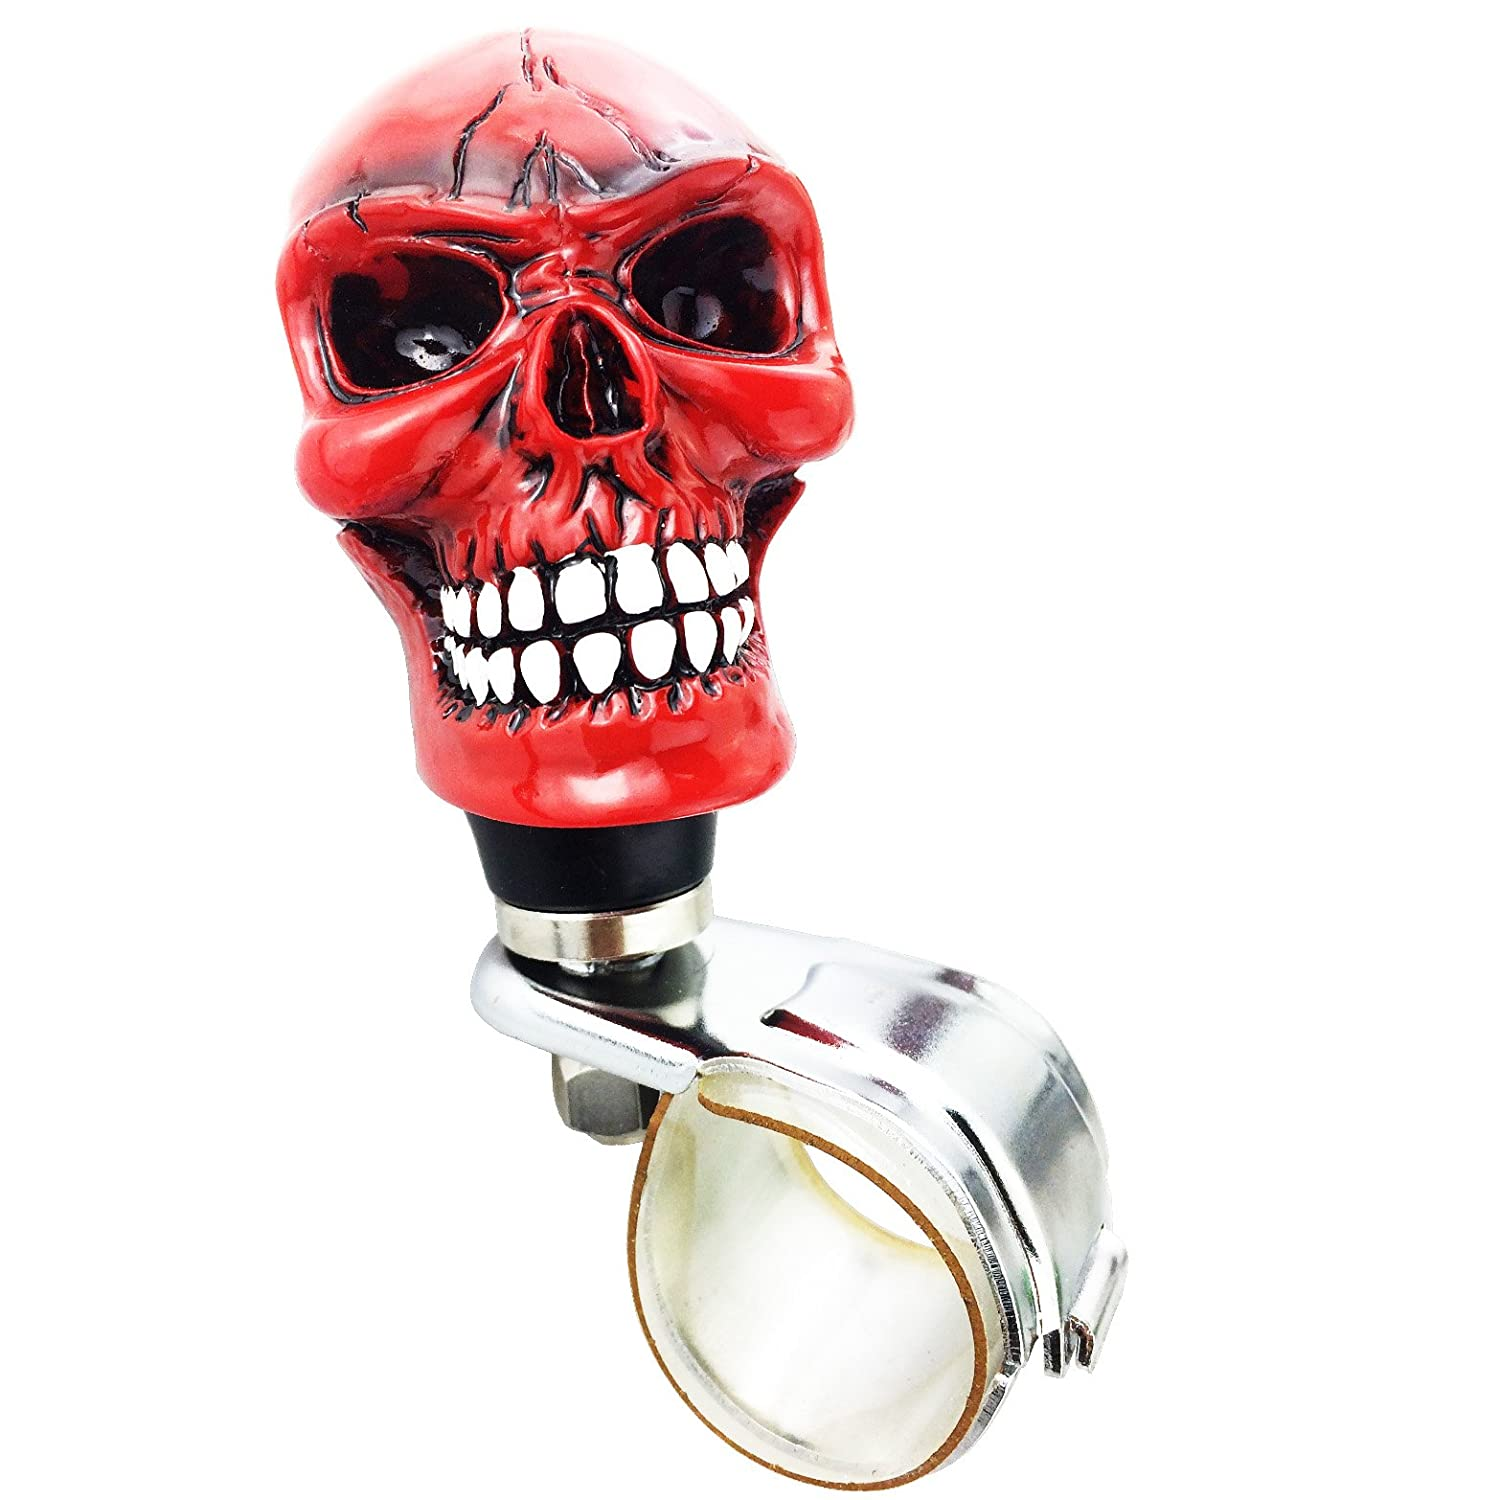 Arenbel Car Steering Wheel Spinner Red Skull Head Black Eye White Mouth Bone Rotating Suicide Knob Spinners Mounted on Outside Rim of Steering Wheel ARK040-BL040A